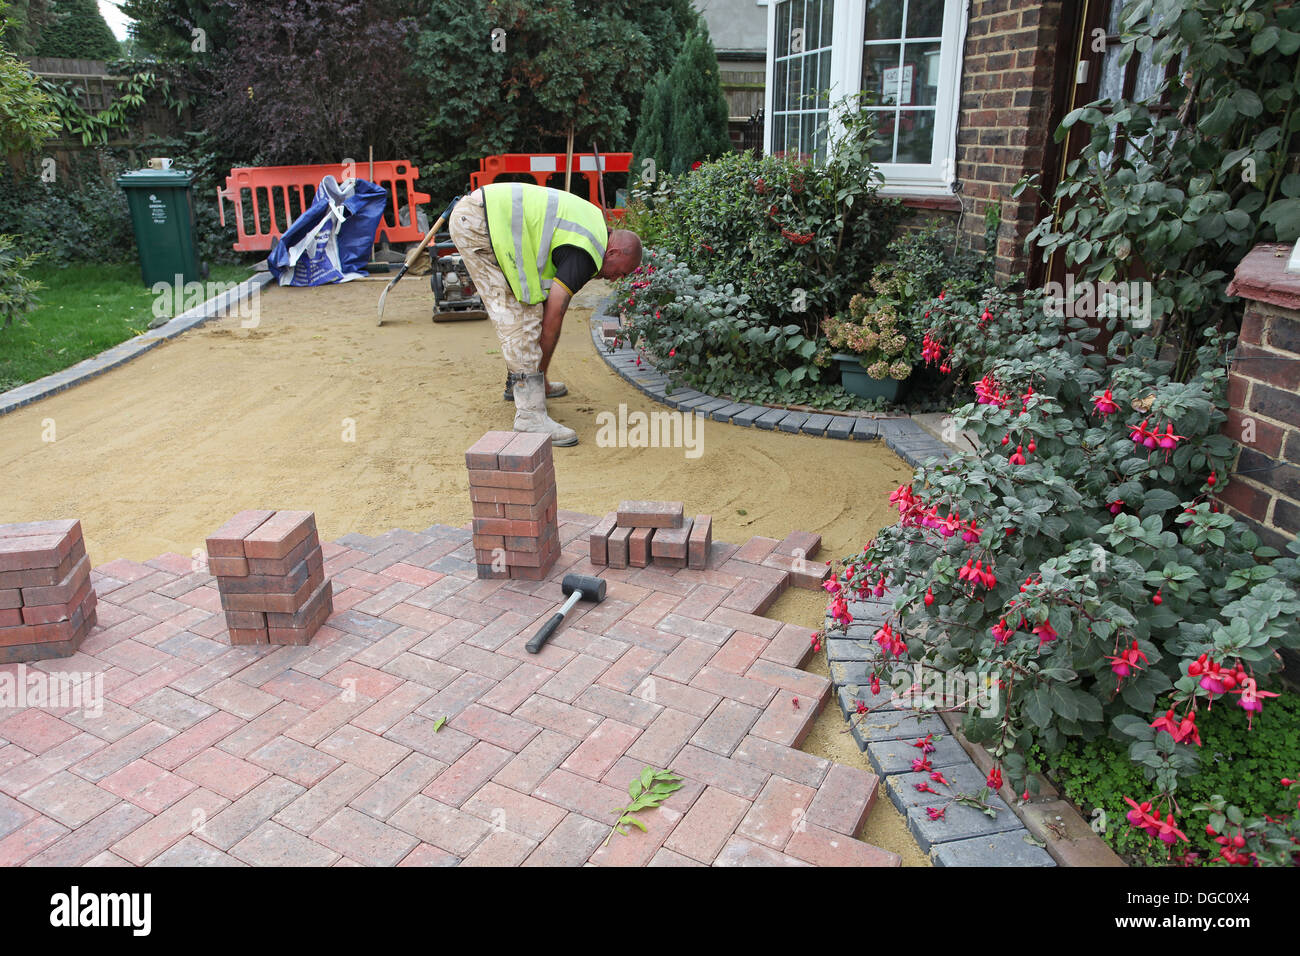 Stage 5 of a project to lay a block paved drive.Lying the blocks on sand. - Stock Image